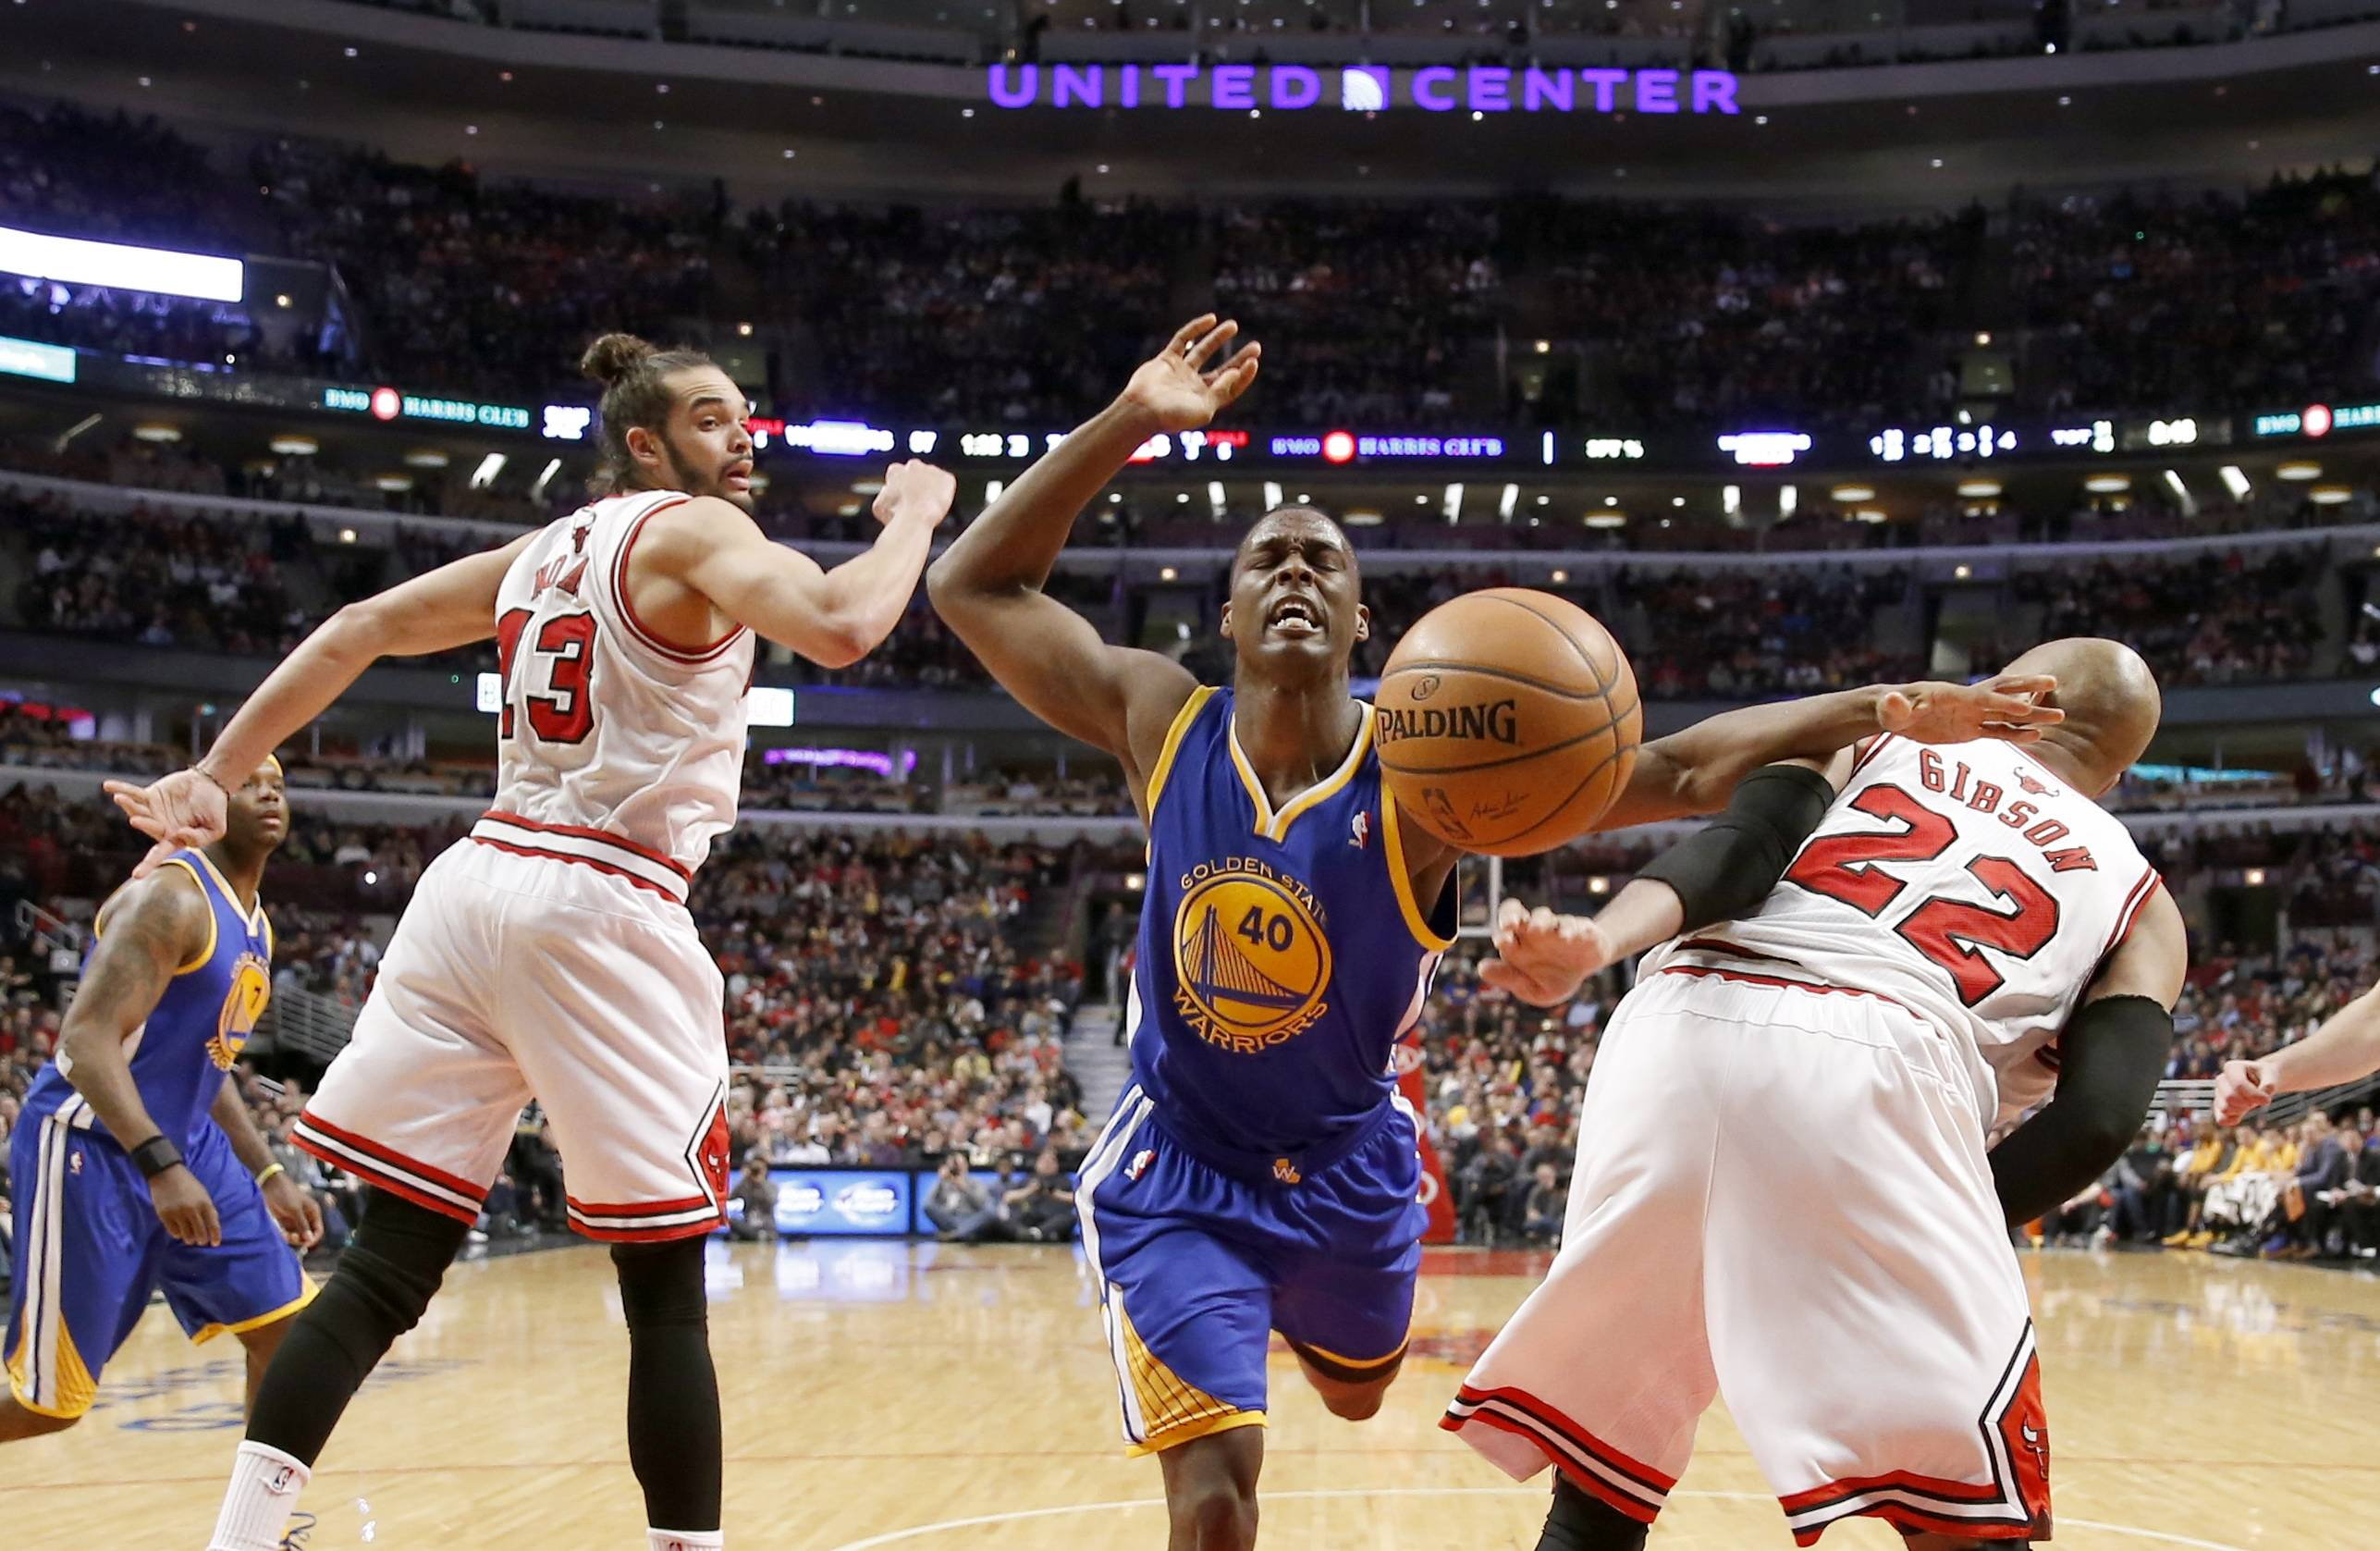 Golden State Warriors' Harrison Barnes has the ball stripped away by Bulls forward Taj Gibson (22) as Joakim Noah (13) also defends Wednesday during the second half at the United Center. The Bulls won 103-83.